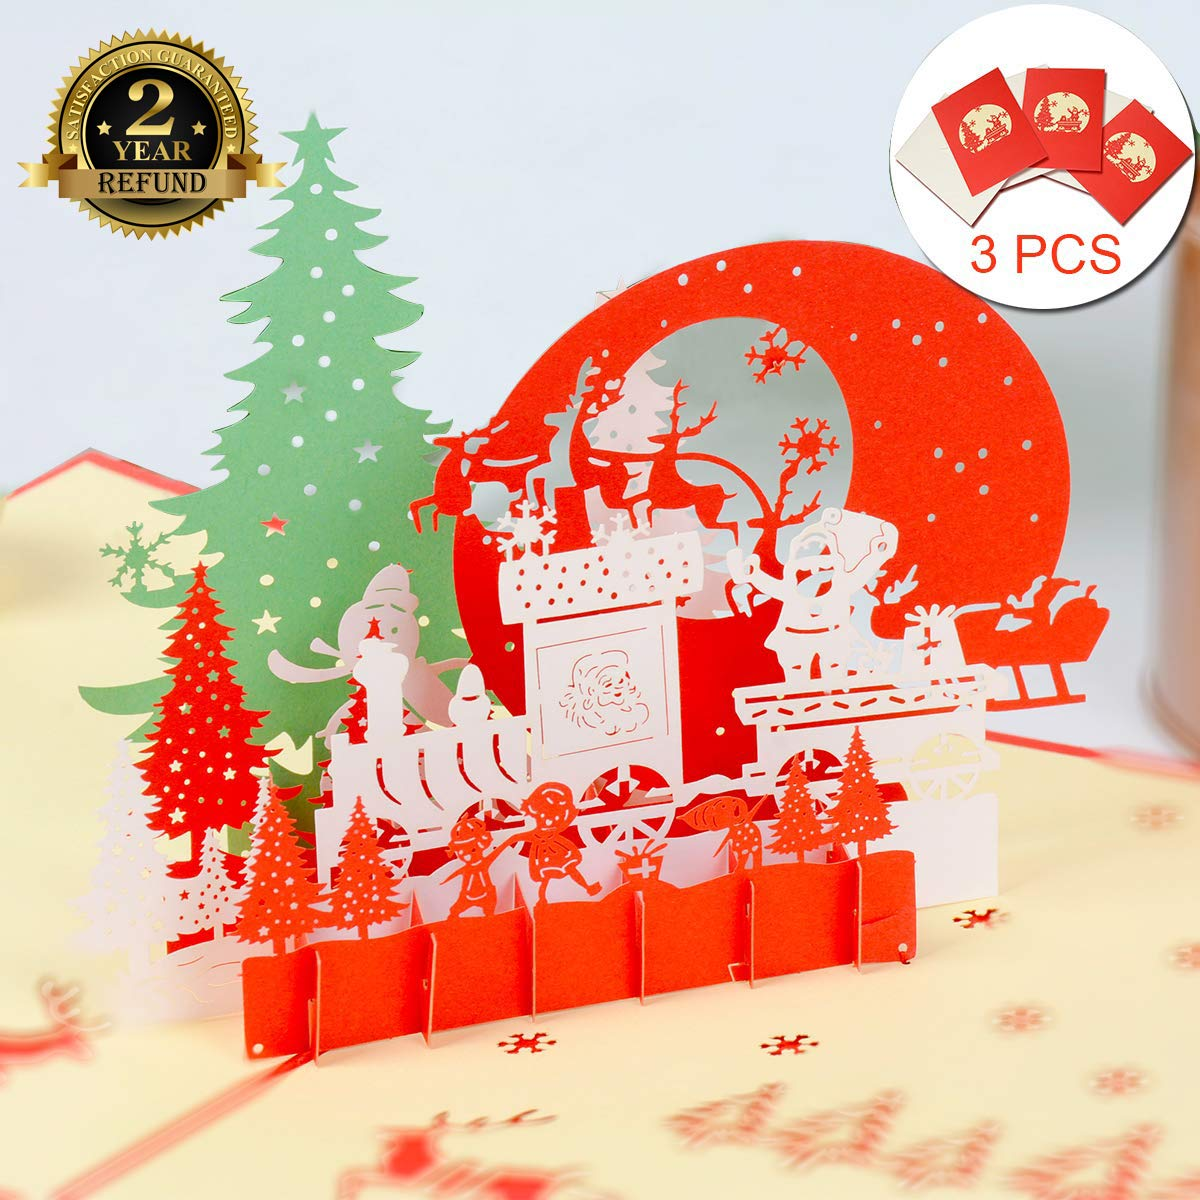 3 Pack Xmas Cards Christmas Cards 3d Pop Up Greeting Cards New Christmas Cards For Xmas Thank You Cards New Year Women Man Kids